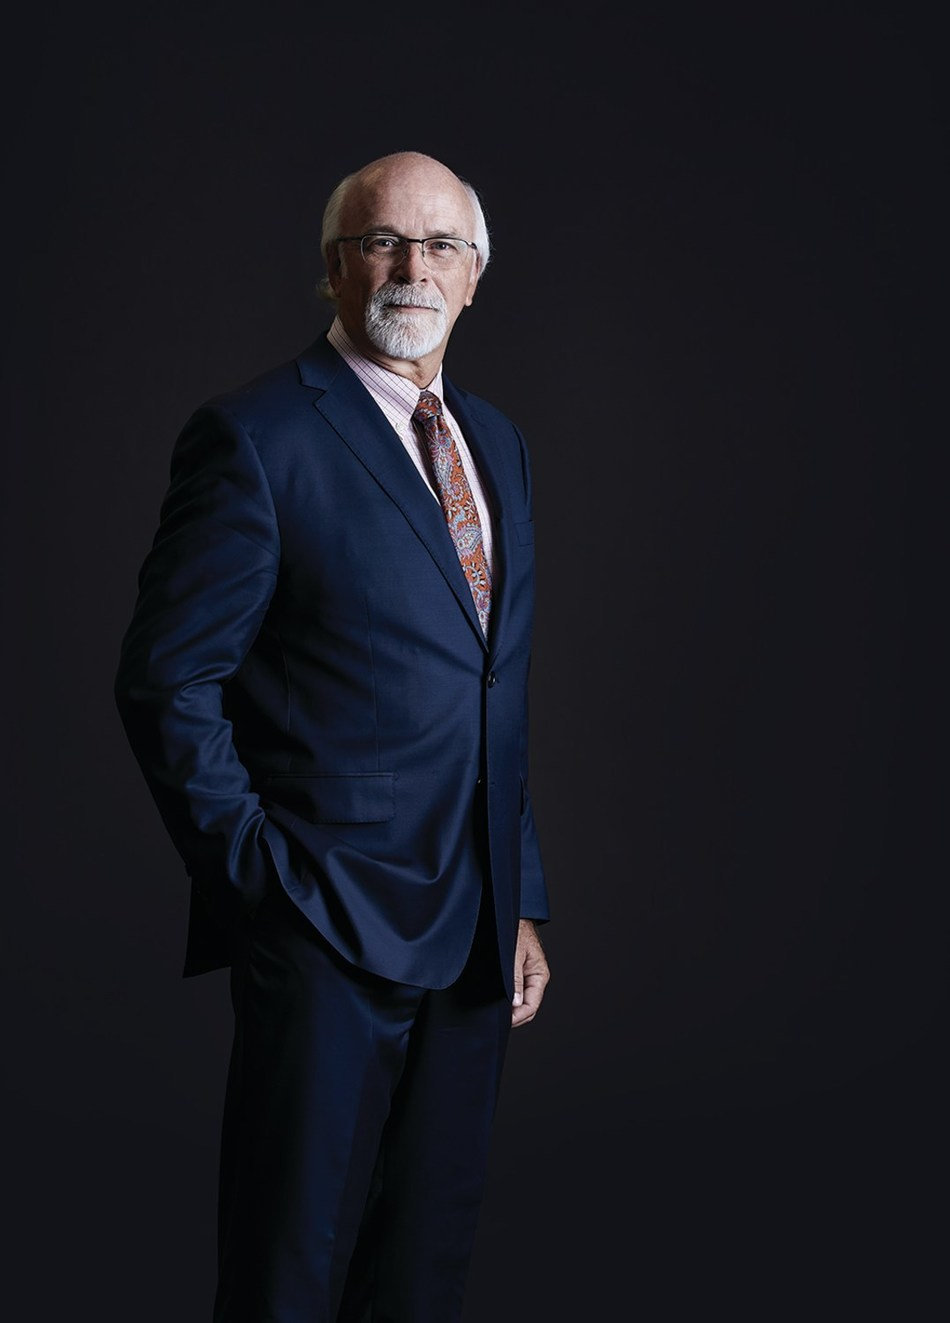 Dr. Michael J. Strong, new President of the Canadian Institutes of Health Research (CNW Group/Canadian Institutes of Health Research)